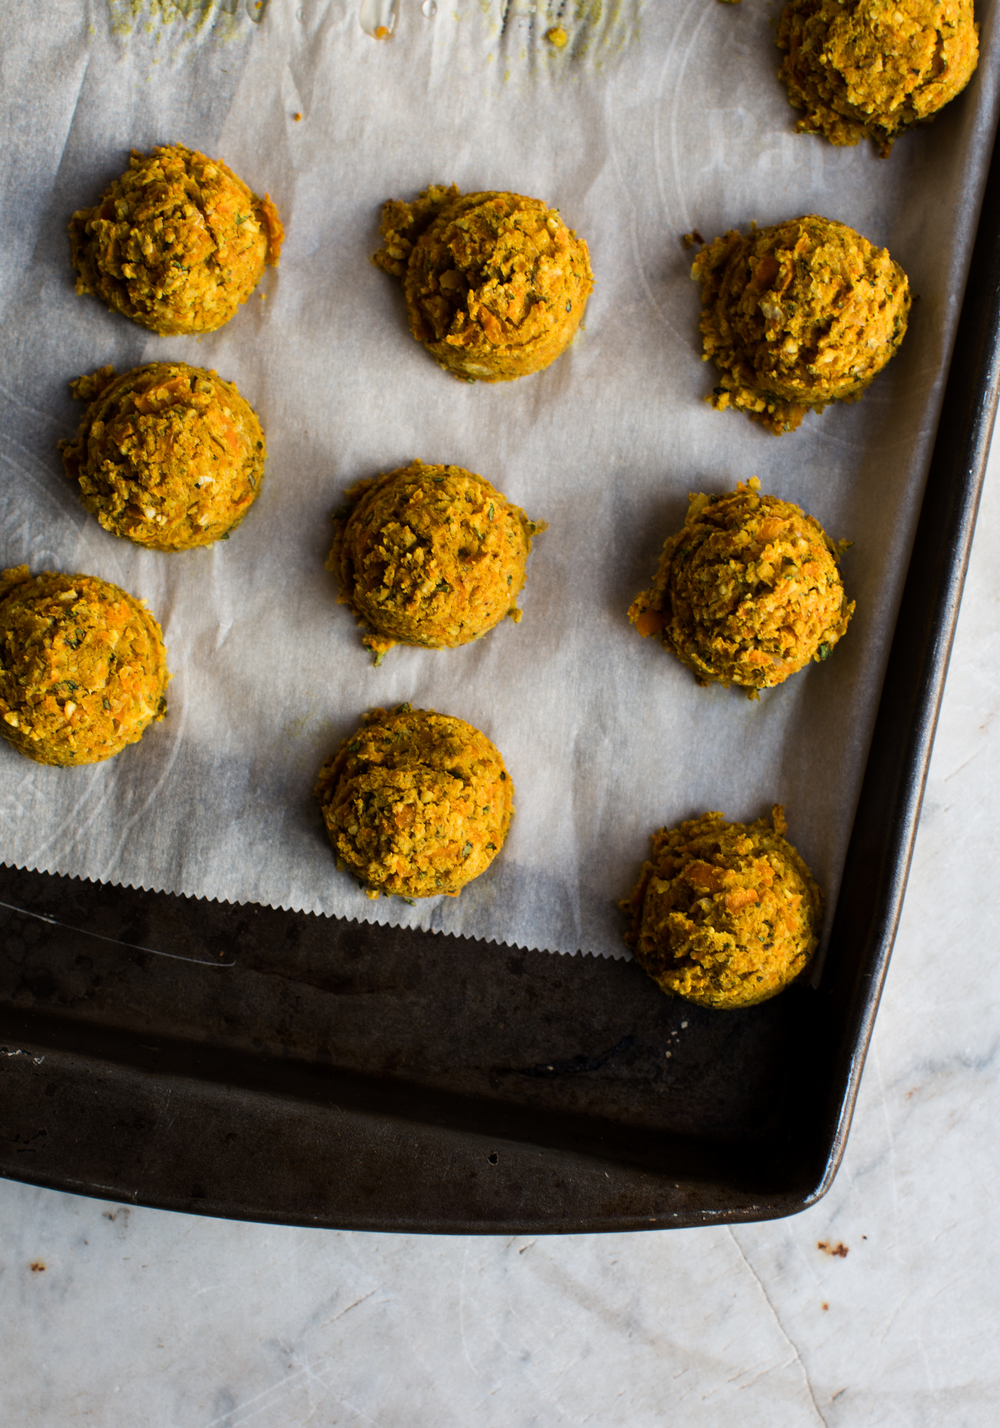 3-Sweet-Potato-and-Turmeric-Falafels-Baked | www.8thandlake.com